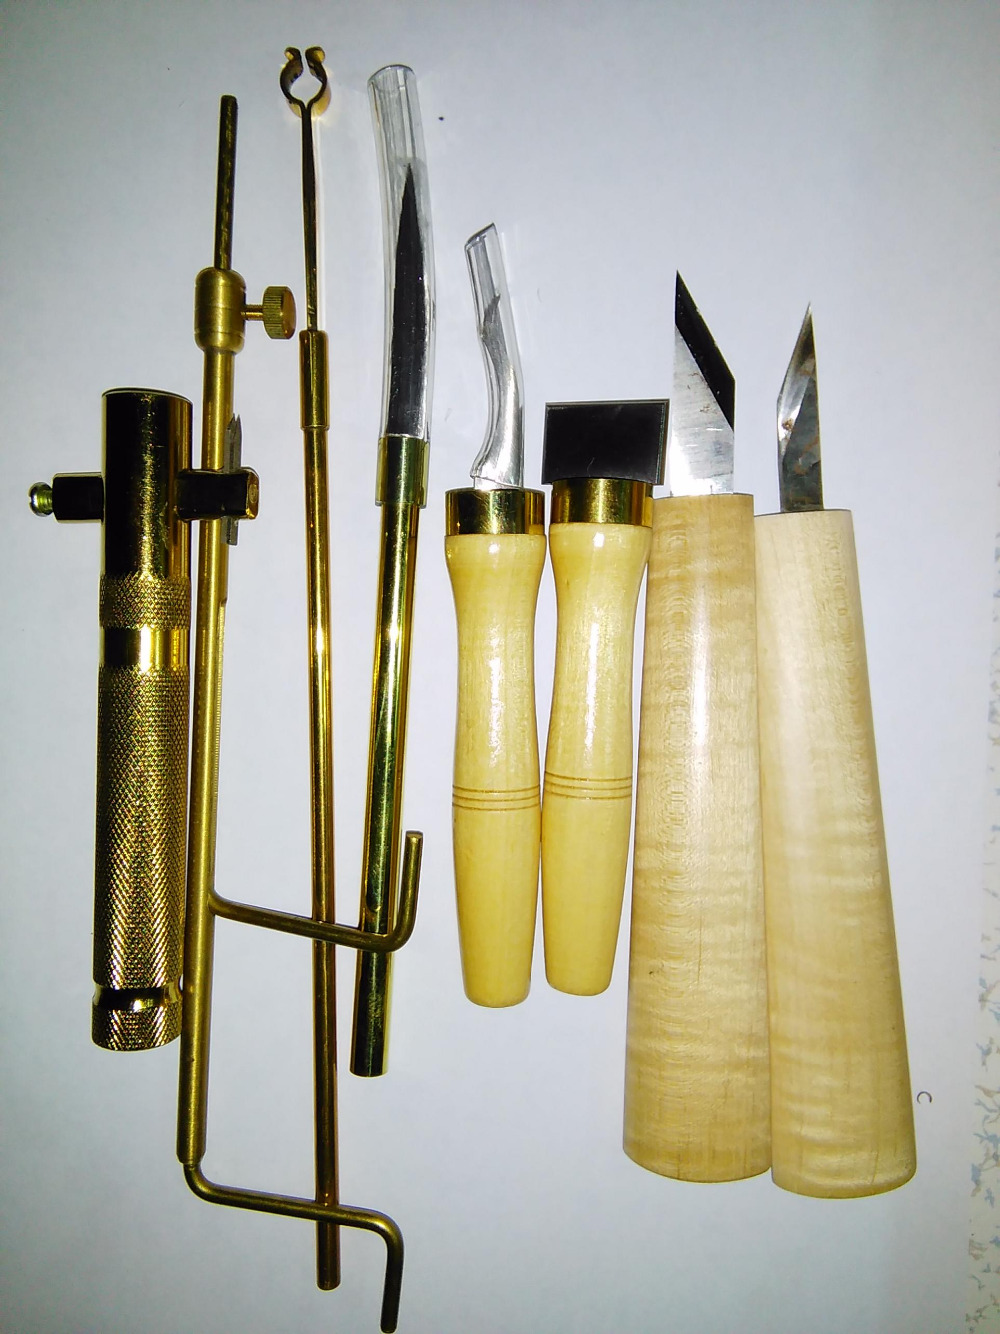 8 PCs Luthier tools for Cello use including cutter repair font b knife b font scraper